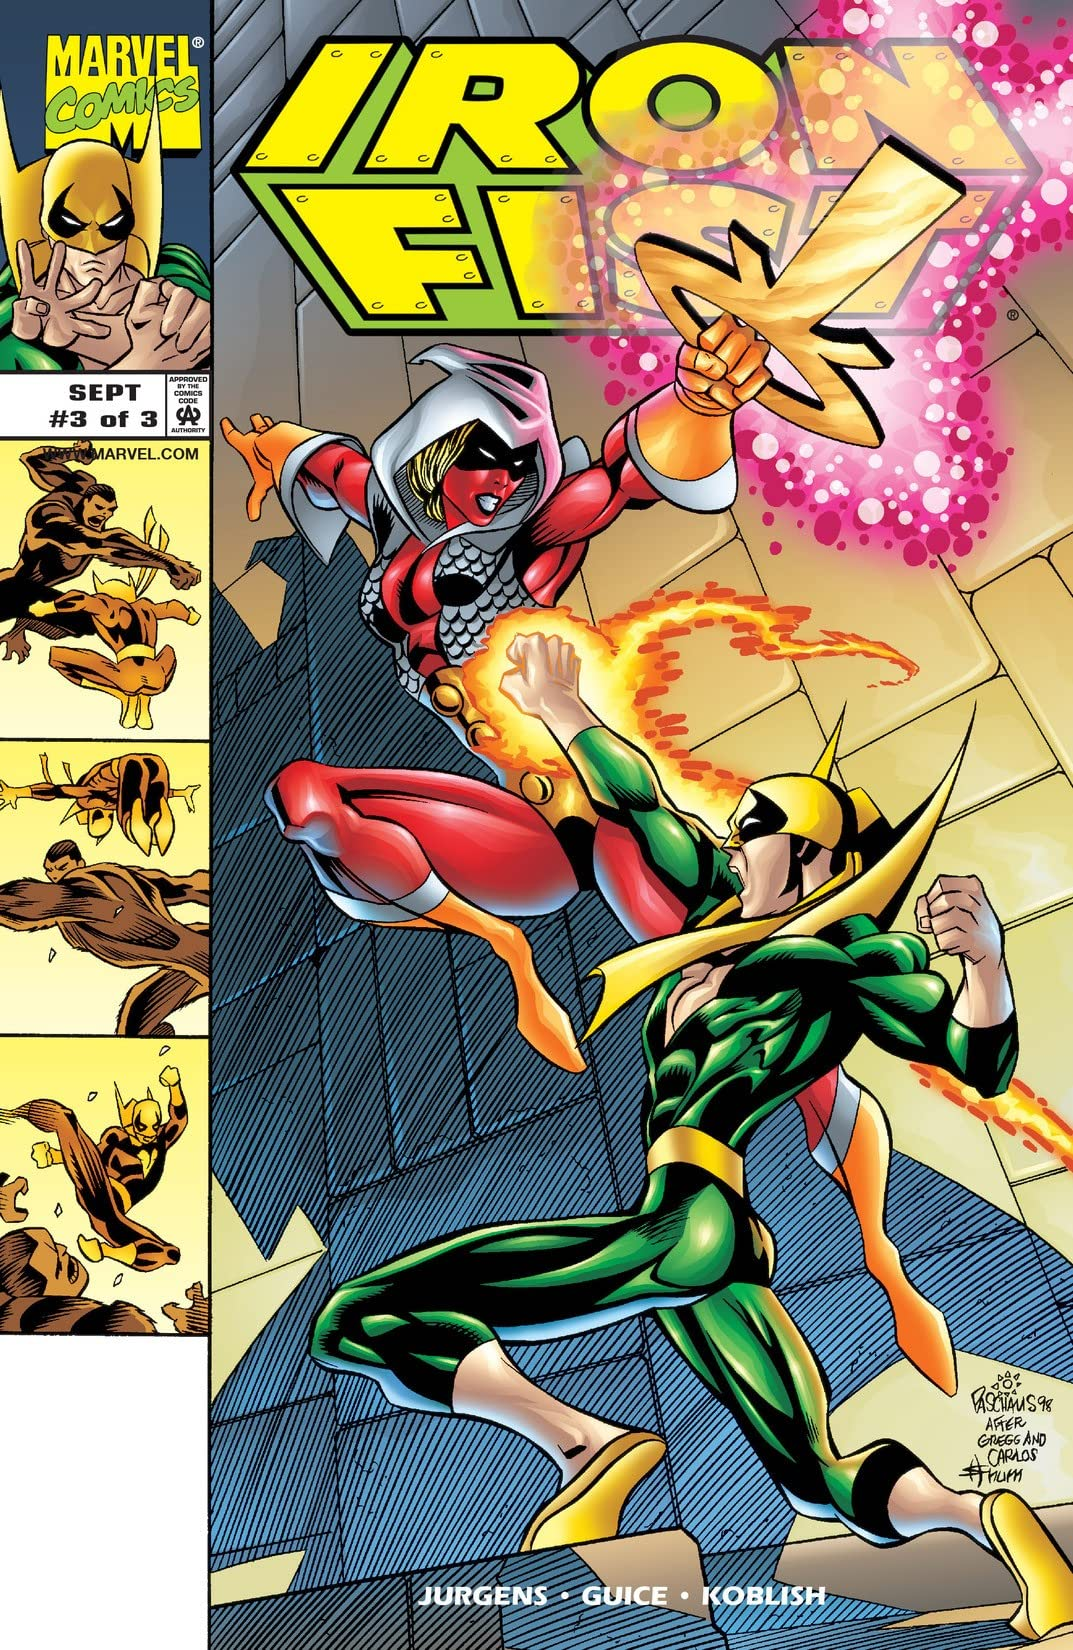 Iron Fist (1998) #3 (of 3)